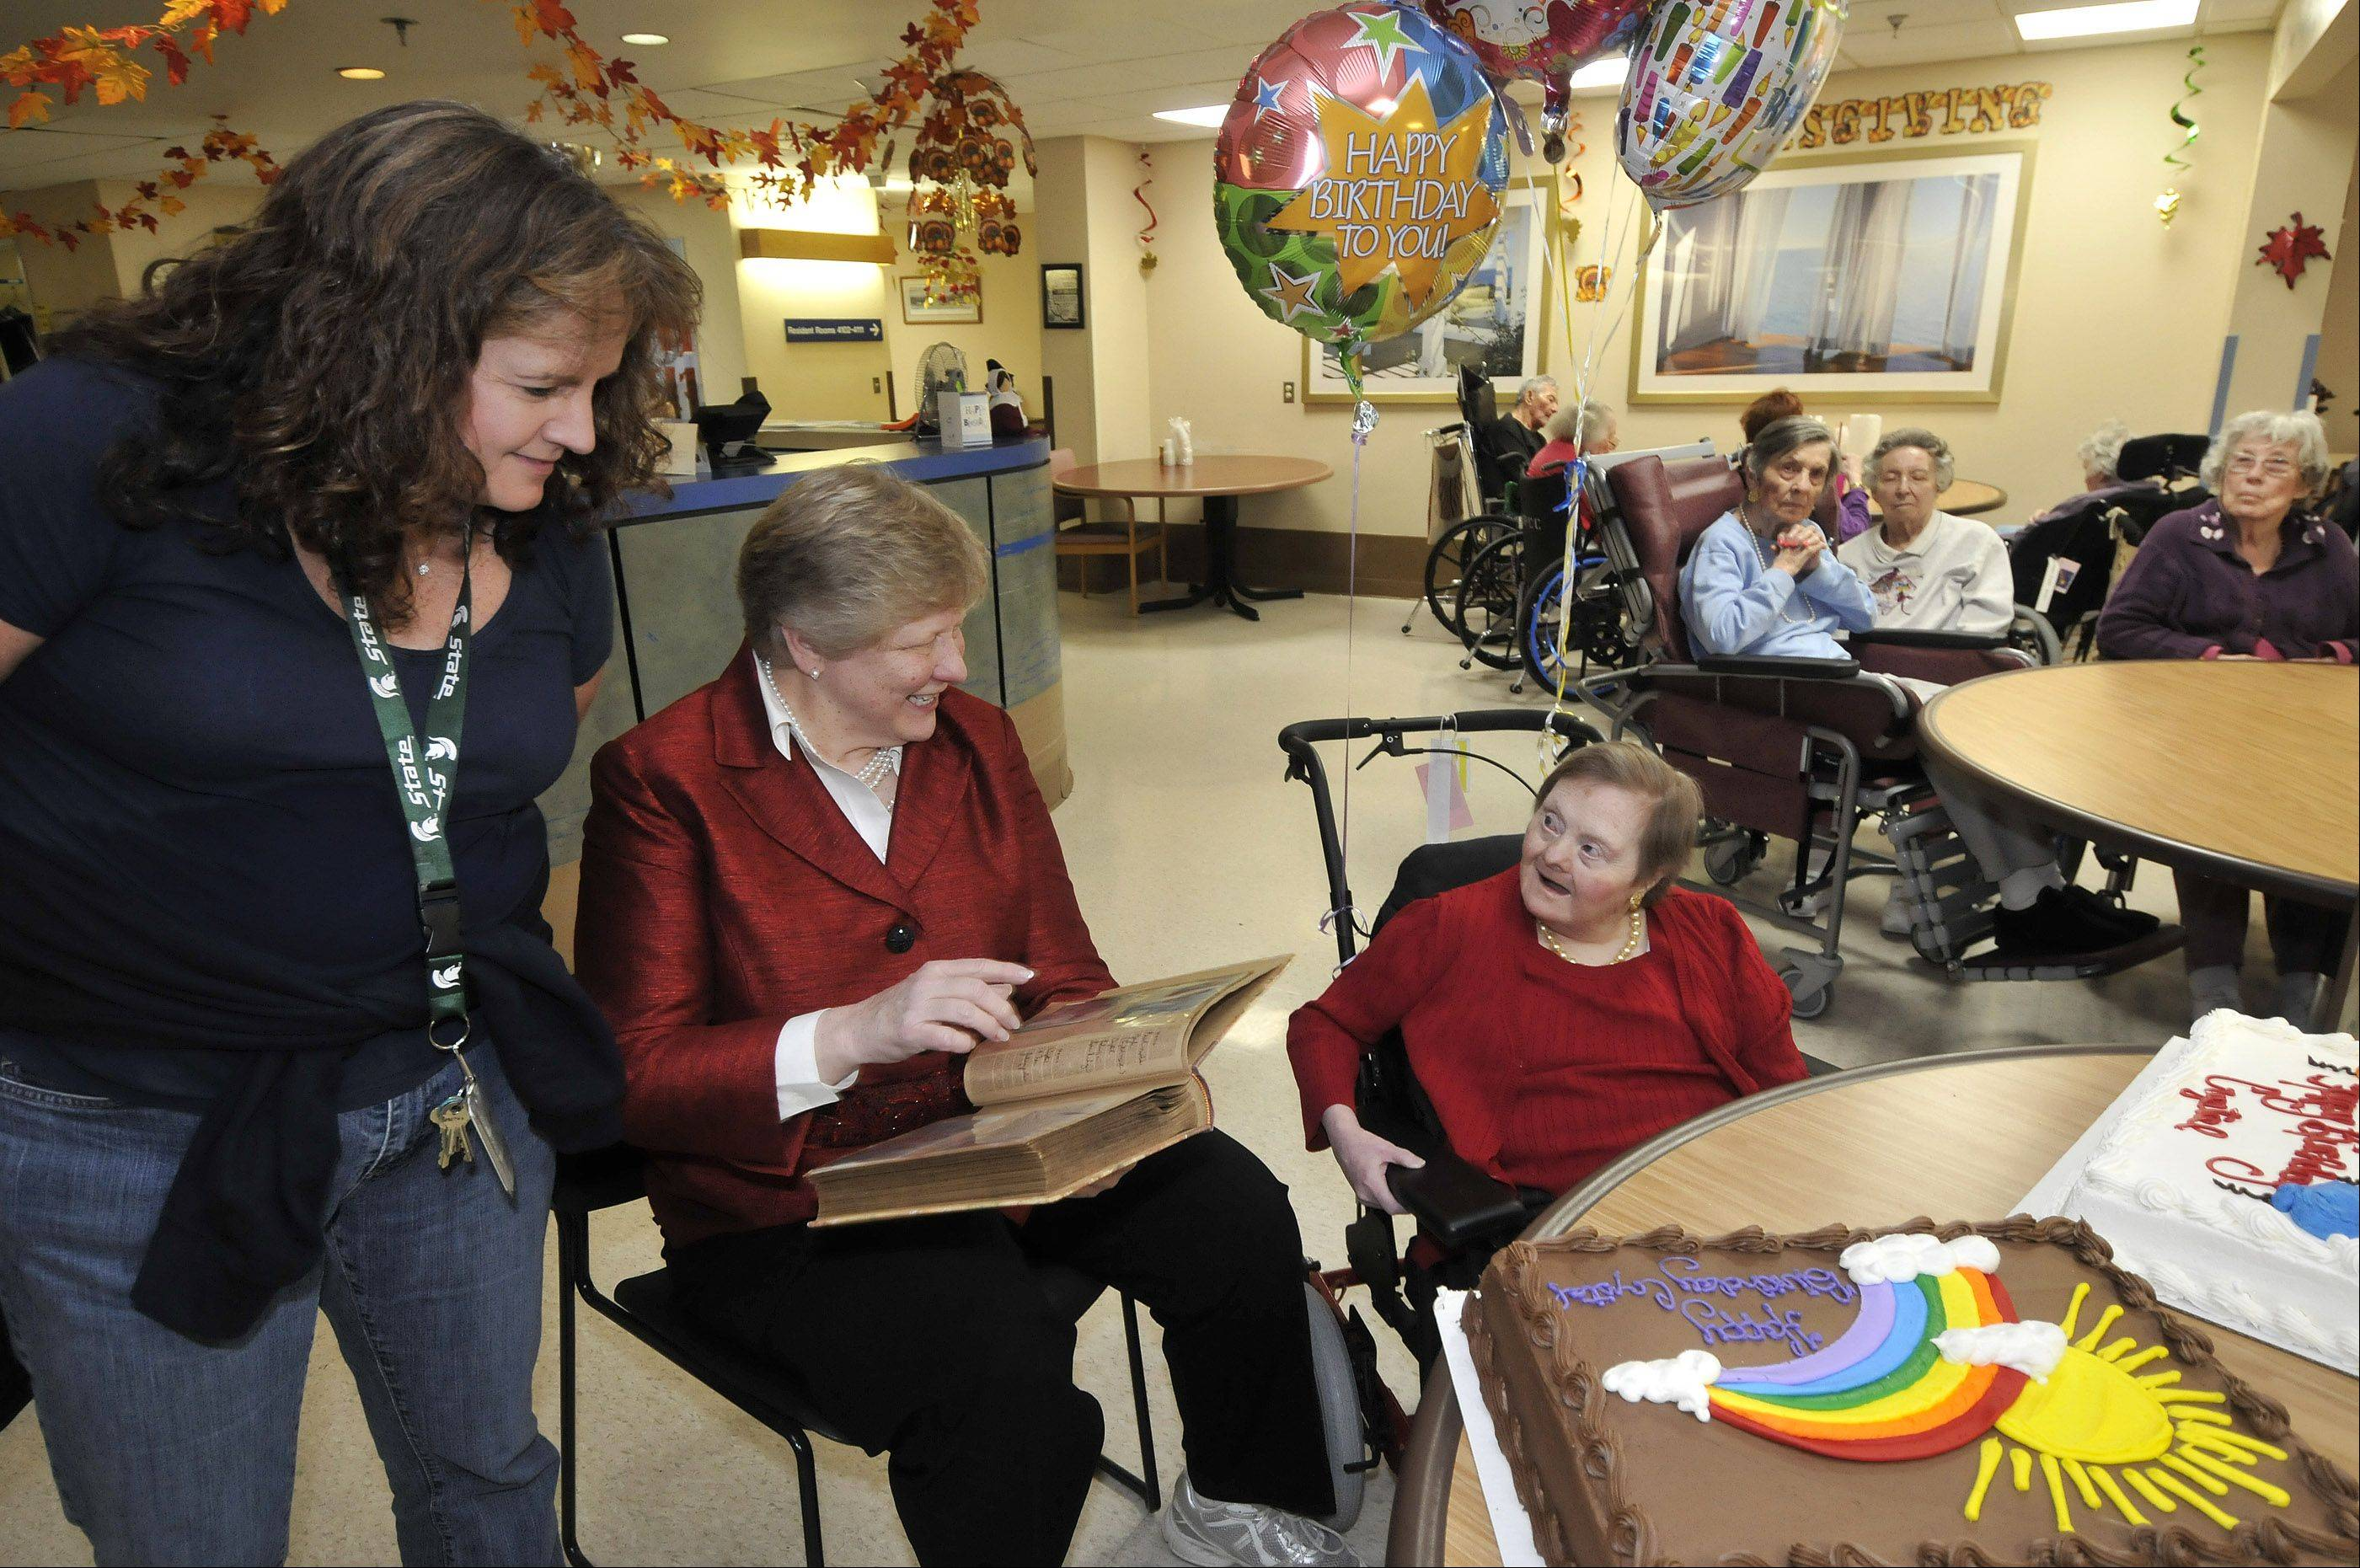 Crystal Barton, right, who lives at the DuPage Convalescent Center in Wheaton, recently turned 71. Her half-sister, Barbara Doerschuk, center, was on hand to show photos of Crystal to her and friends at the center. Susan Coblentz, a manager of recreation therapy at the center, organized the birthday party.